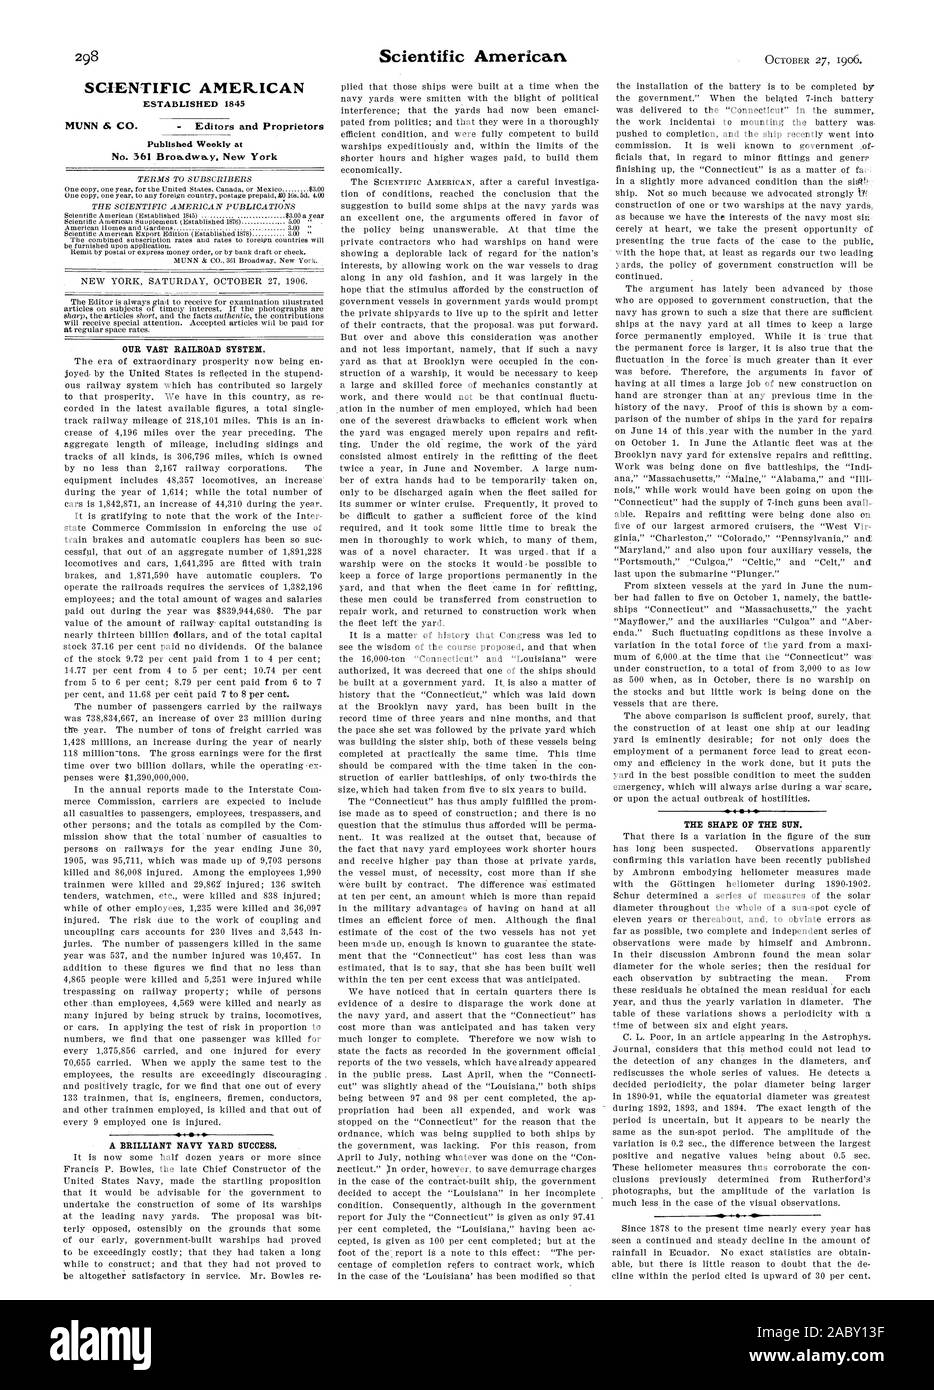 SCIENTIFIC AMER.ICAN No. 361 Broa.dwa.y. New York OUR VAST RAILROAD SYSTEM. A BRILLIANT NAVY YARD SUCCESS. THE SHAPE OF THE SUN., scientific american, 1906-10-27 Stock Photo